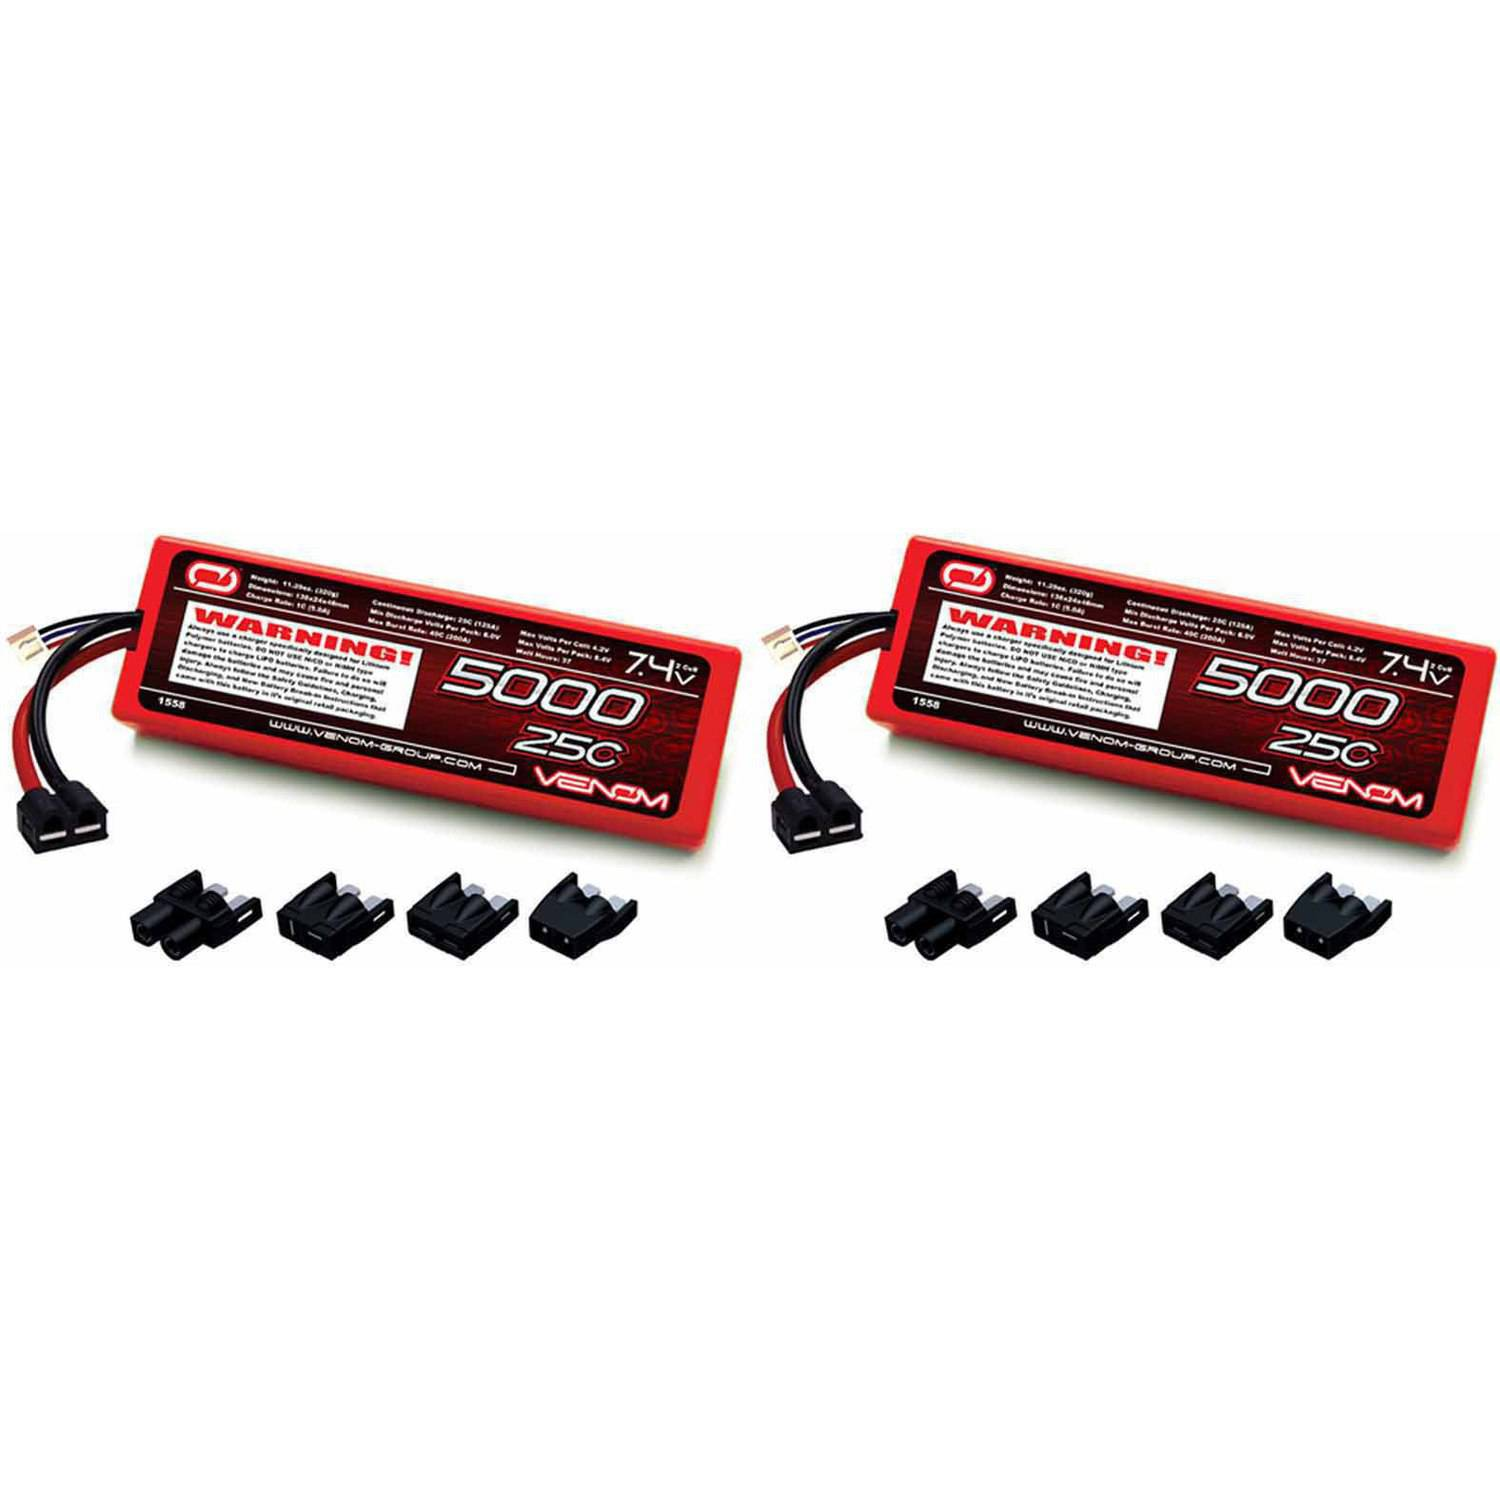 Venom 25C 2S 5000mAh 7.4V Hard Case LiPo Battery with Universal Plug (EC3/Deans/Traxxas/Tamiya) x2 Packs